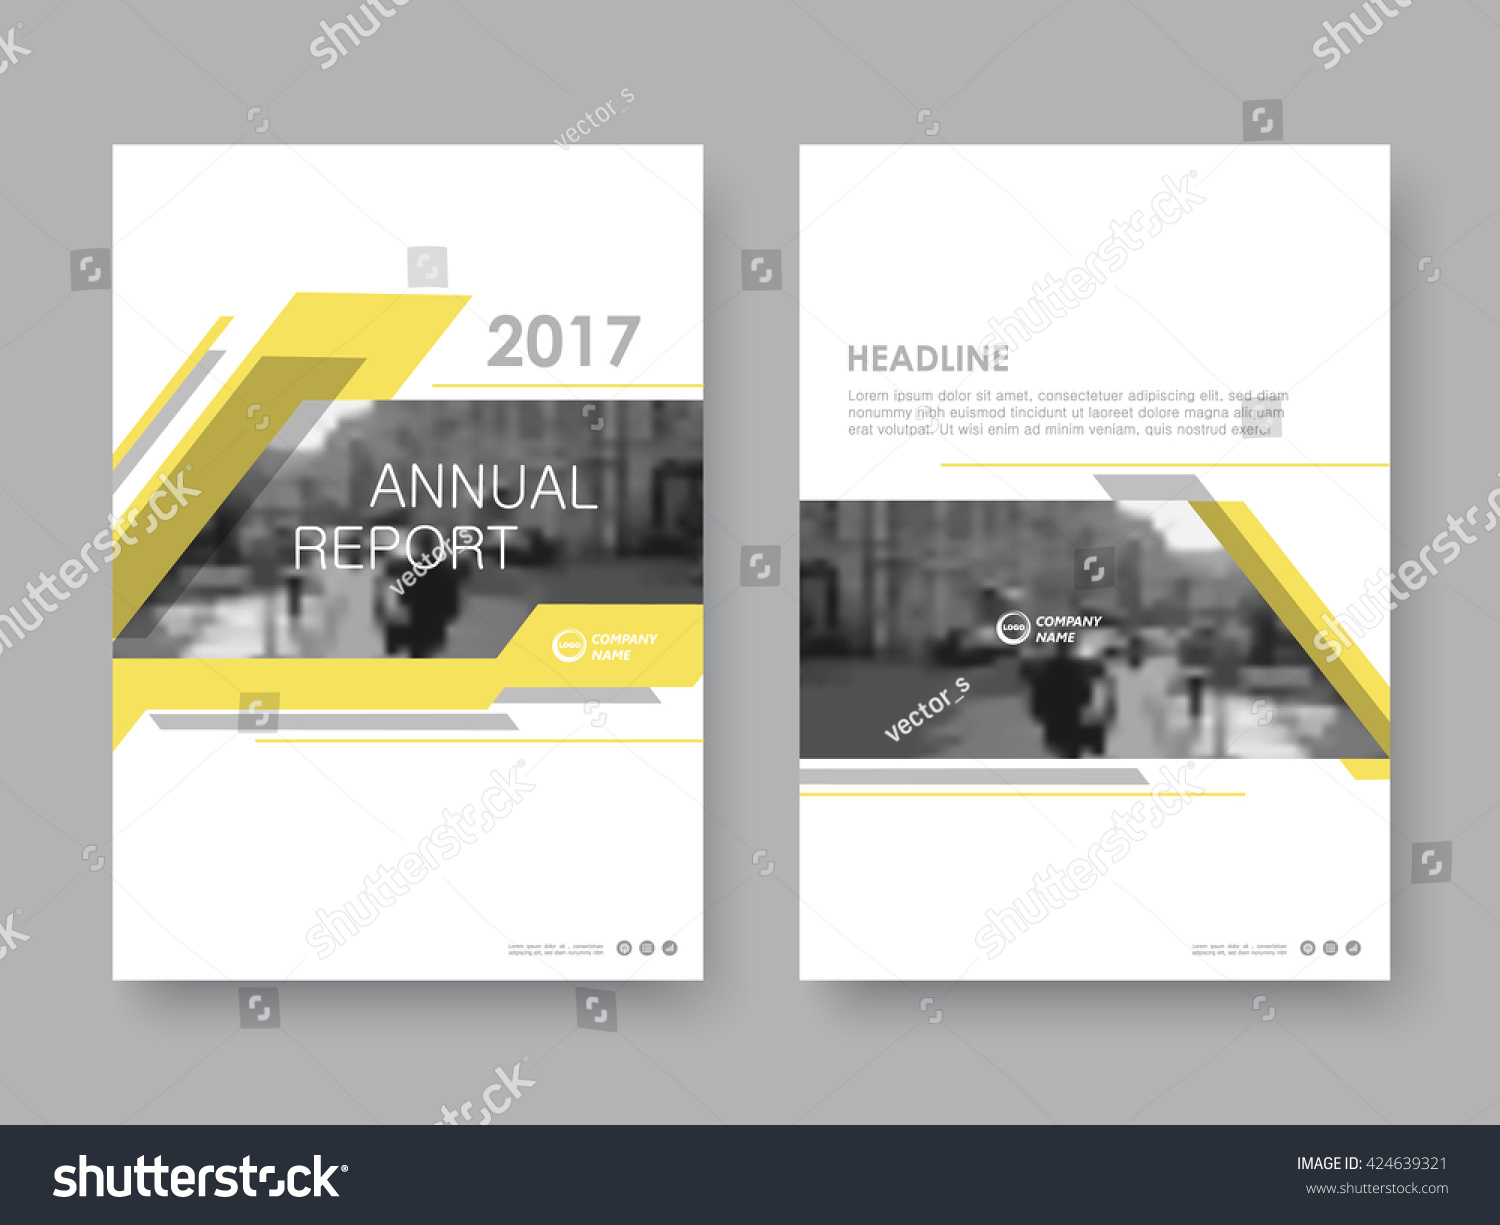 annual report flyer presentation brochure front stock vector 424639321 shutterstock. Black Bedroom Furniture Sets. Home Design Ideas